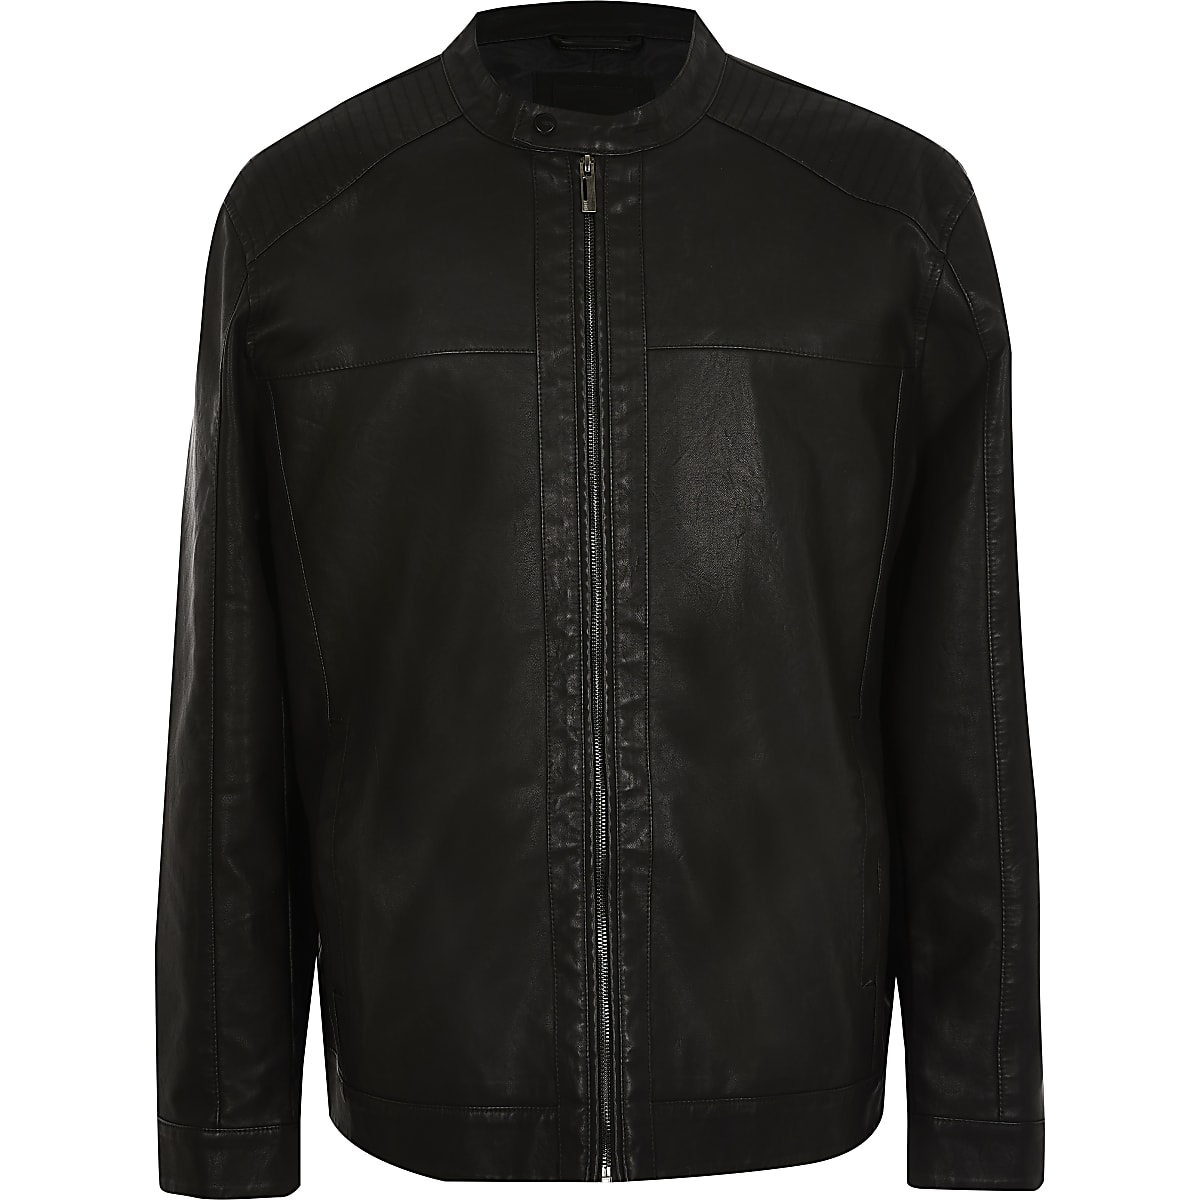 Only & Sons Big and Tall black racer jacket